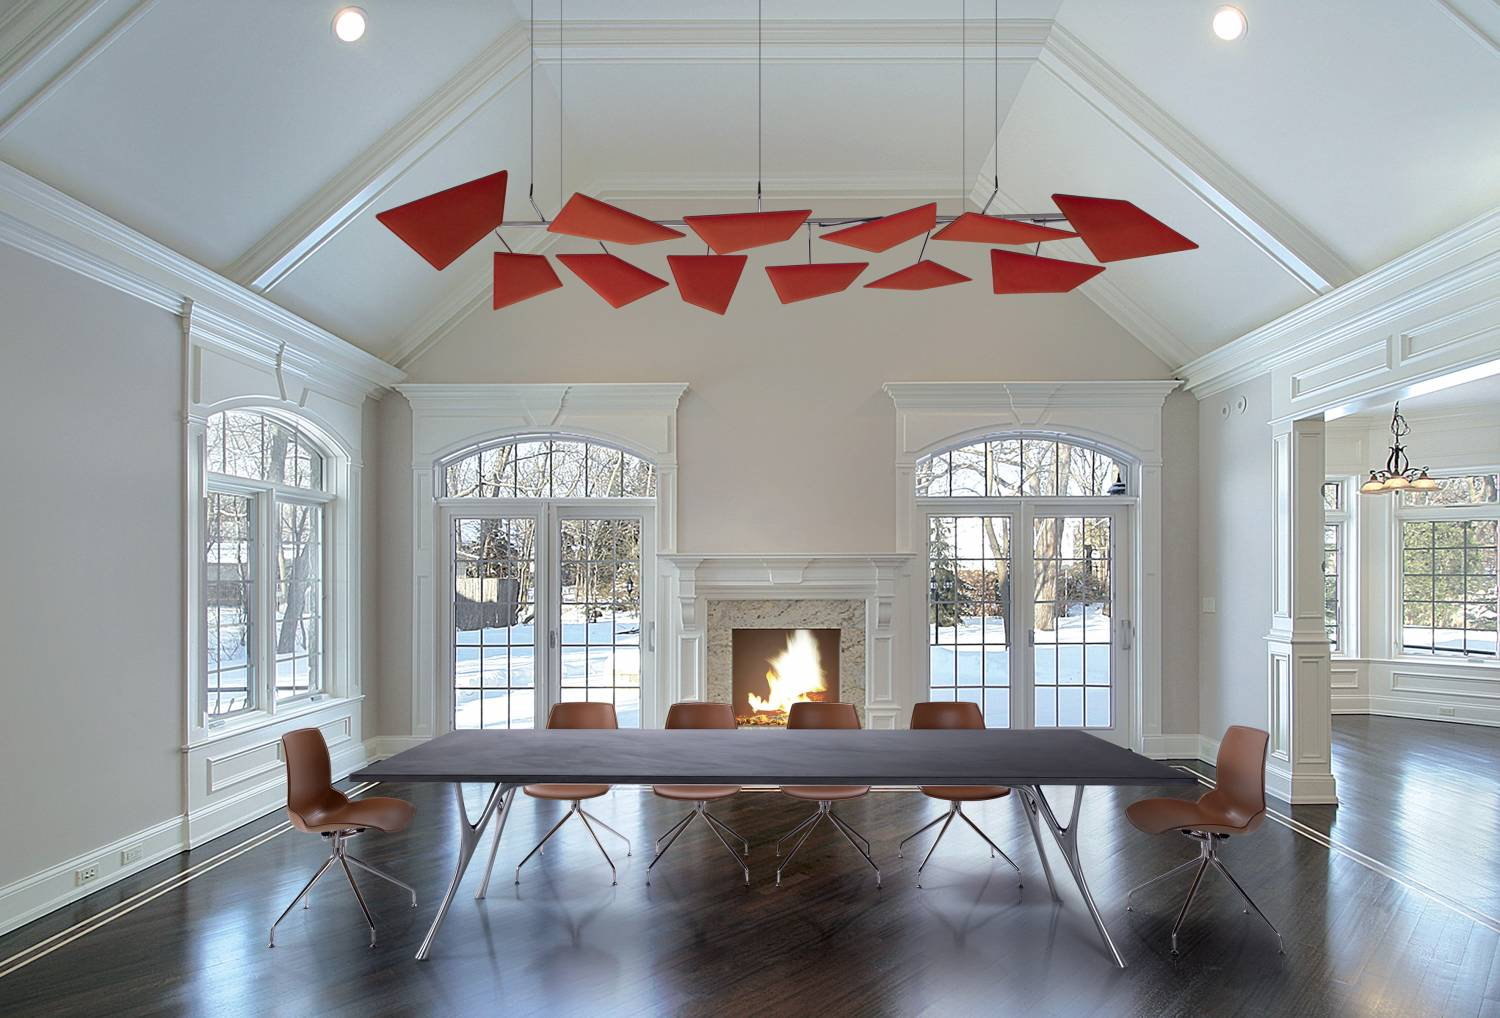 Flap-Acoustic-Panels-Suspended-From-Ceiling-In-Large-Room